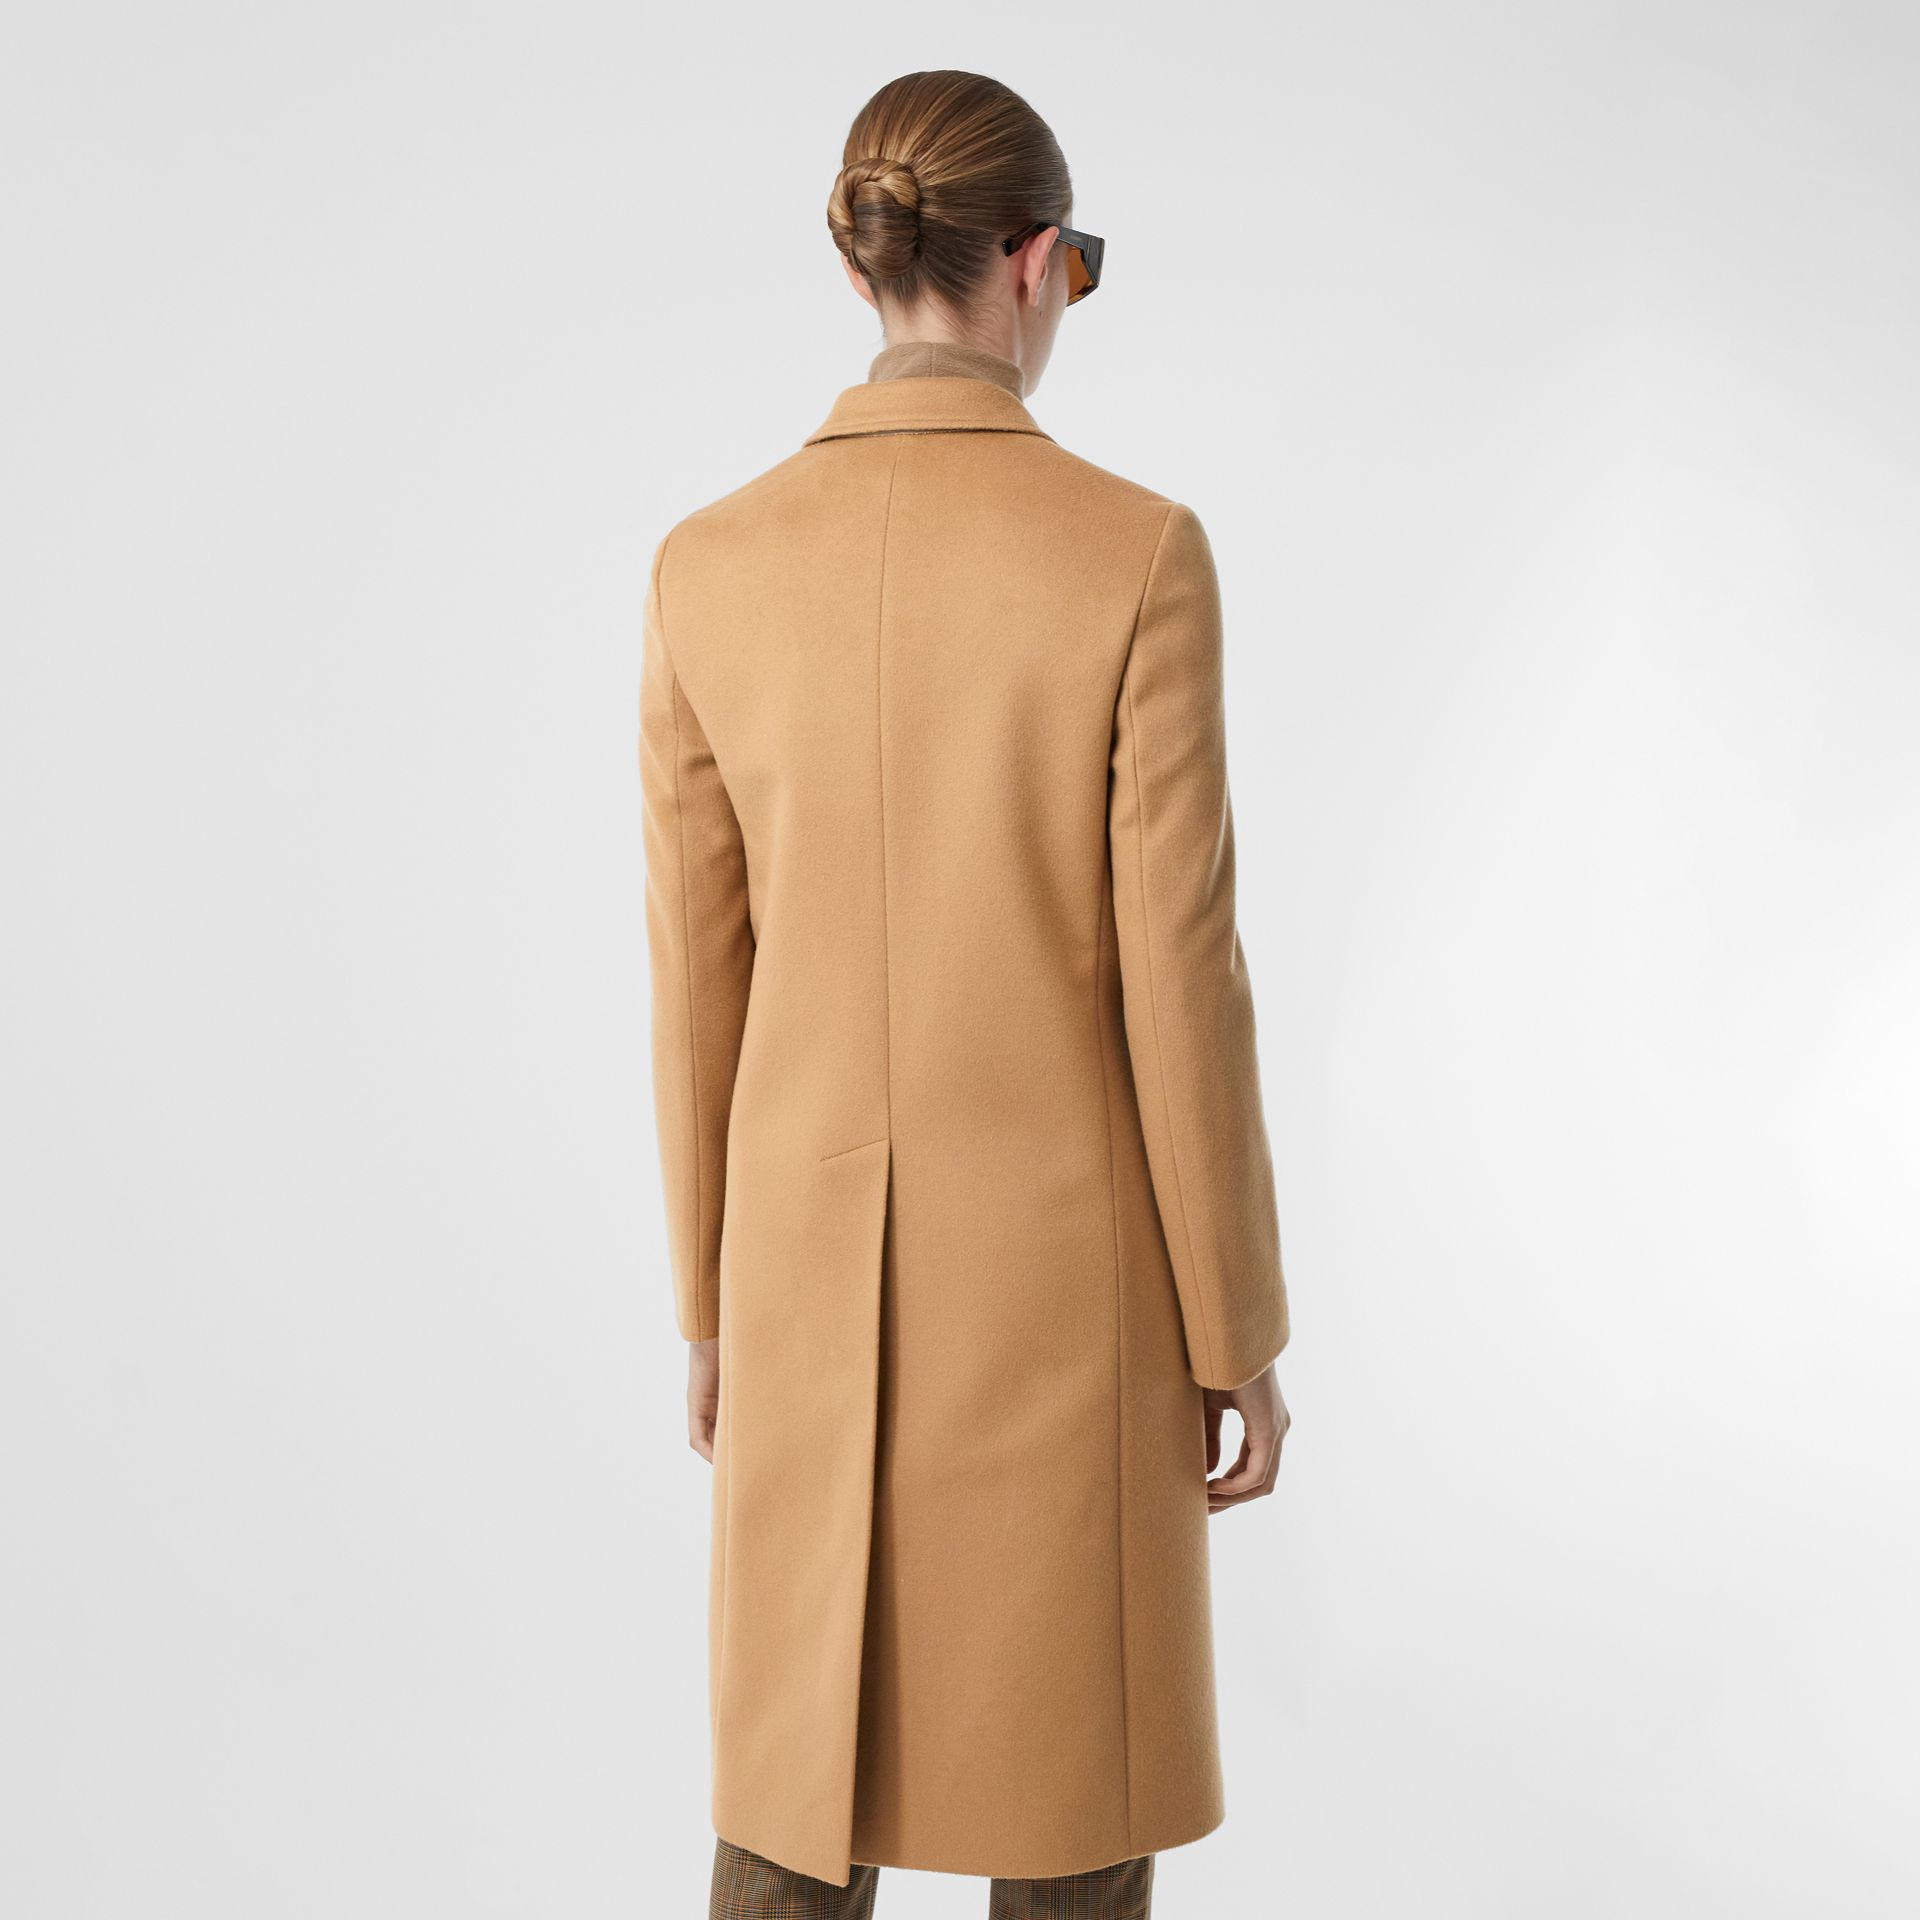 Wool Cashmere Tailored Coat in Light Camel - Women | Burberry United Kingdom - gallery image 2